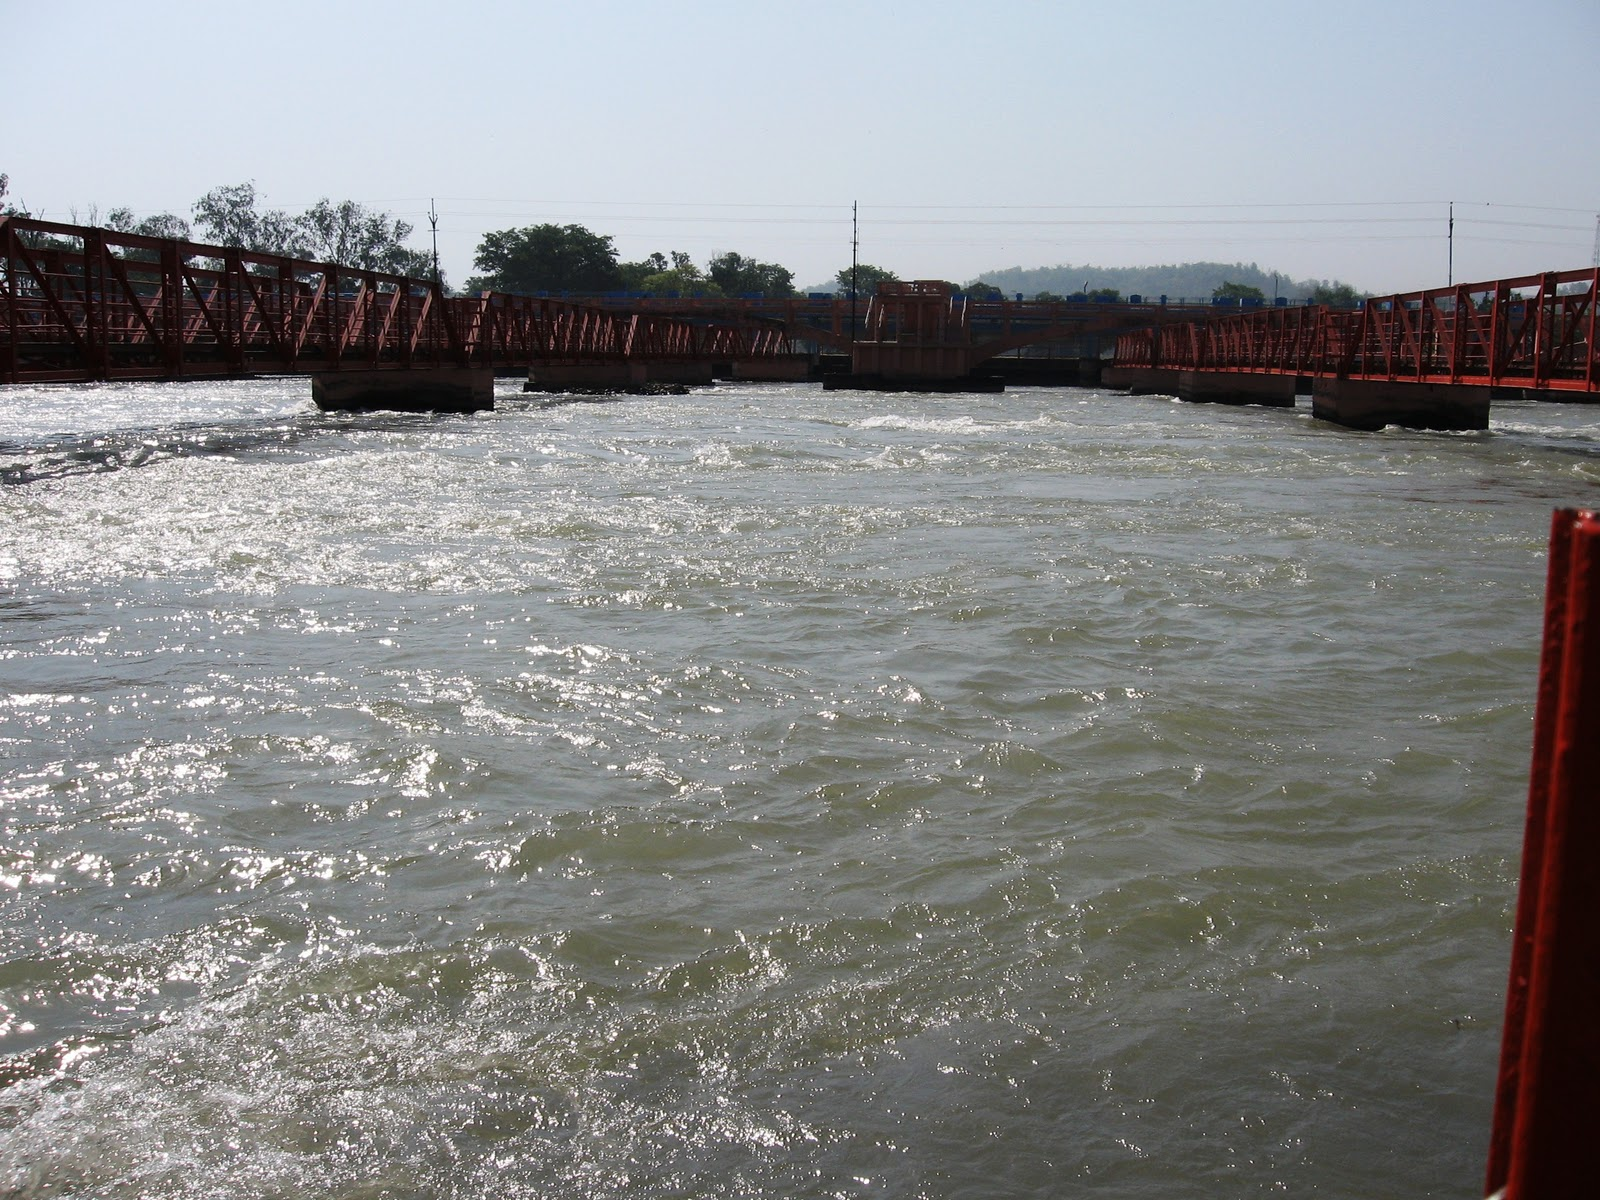 ganga rever 2018-6-8 the river ganges, also known as the ganga, flows 2,700 km from the himalaya mountains to the bay of bengal in northern india and bangladesh regarded.